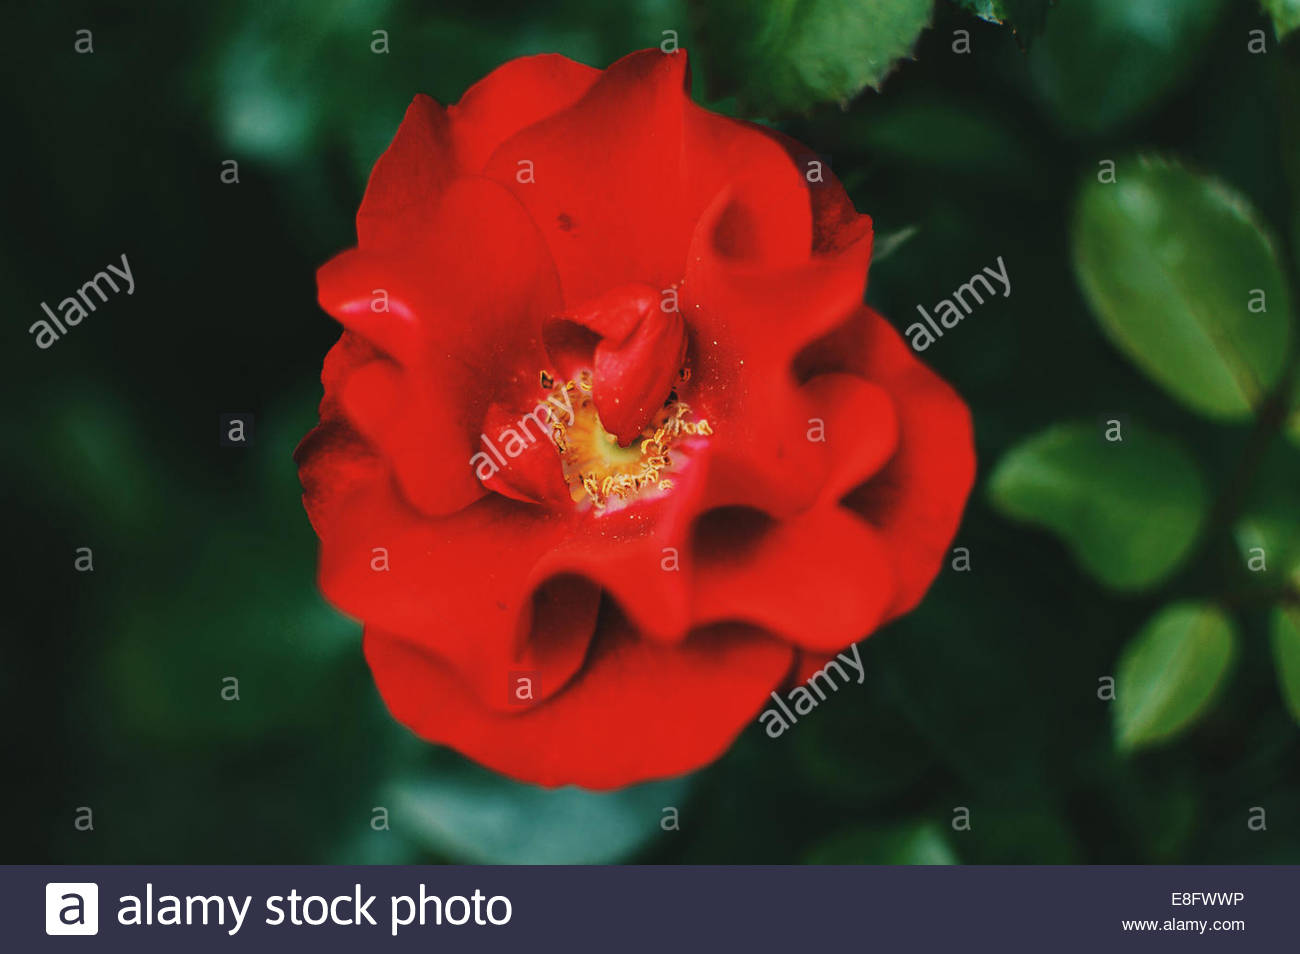 Close-up of red rose Photo Stock